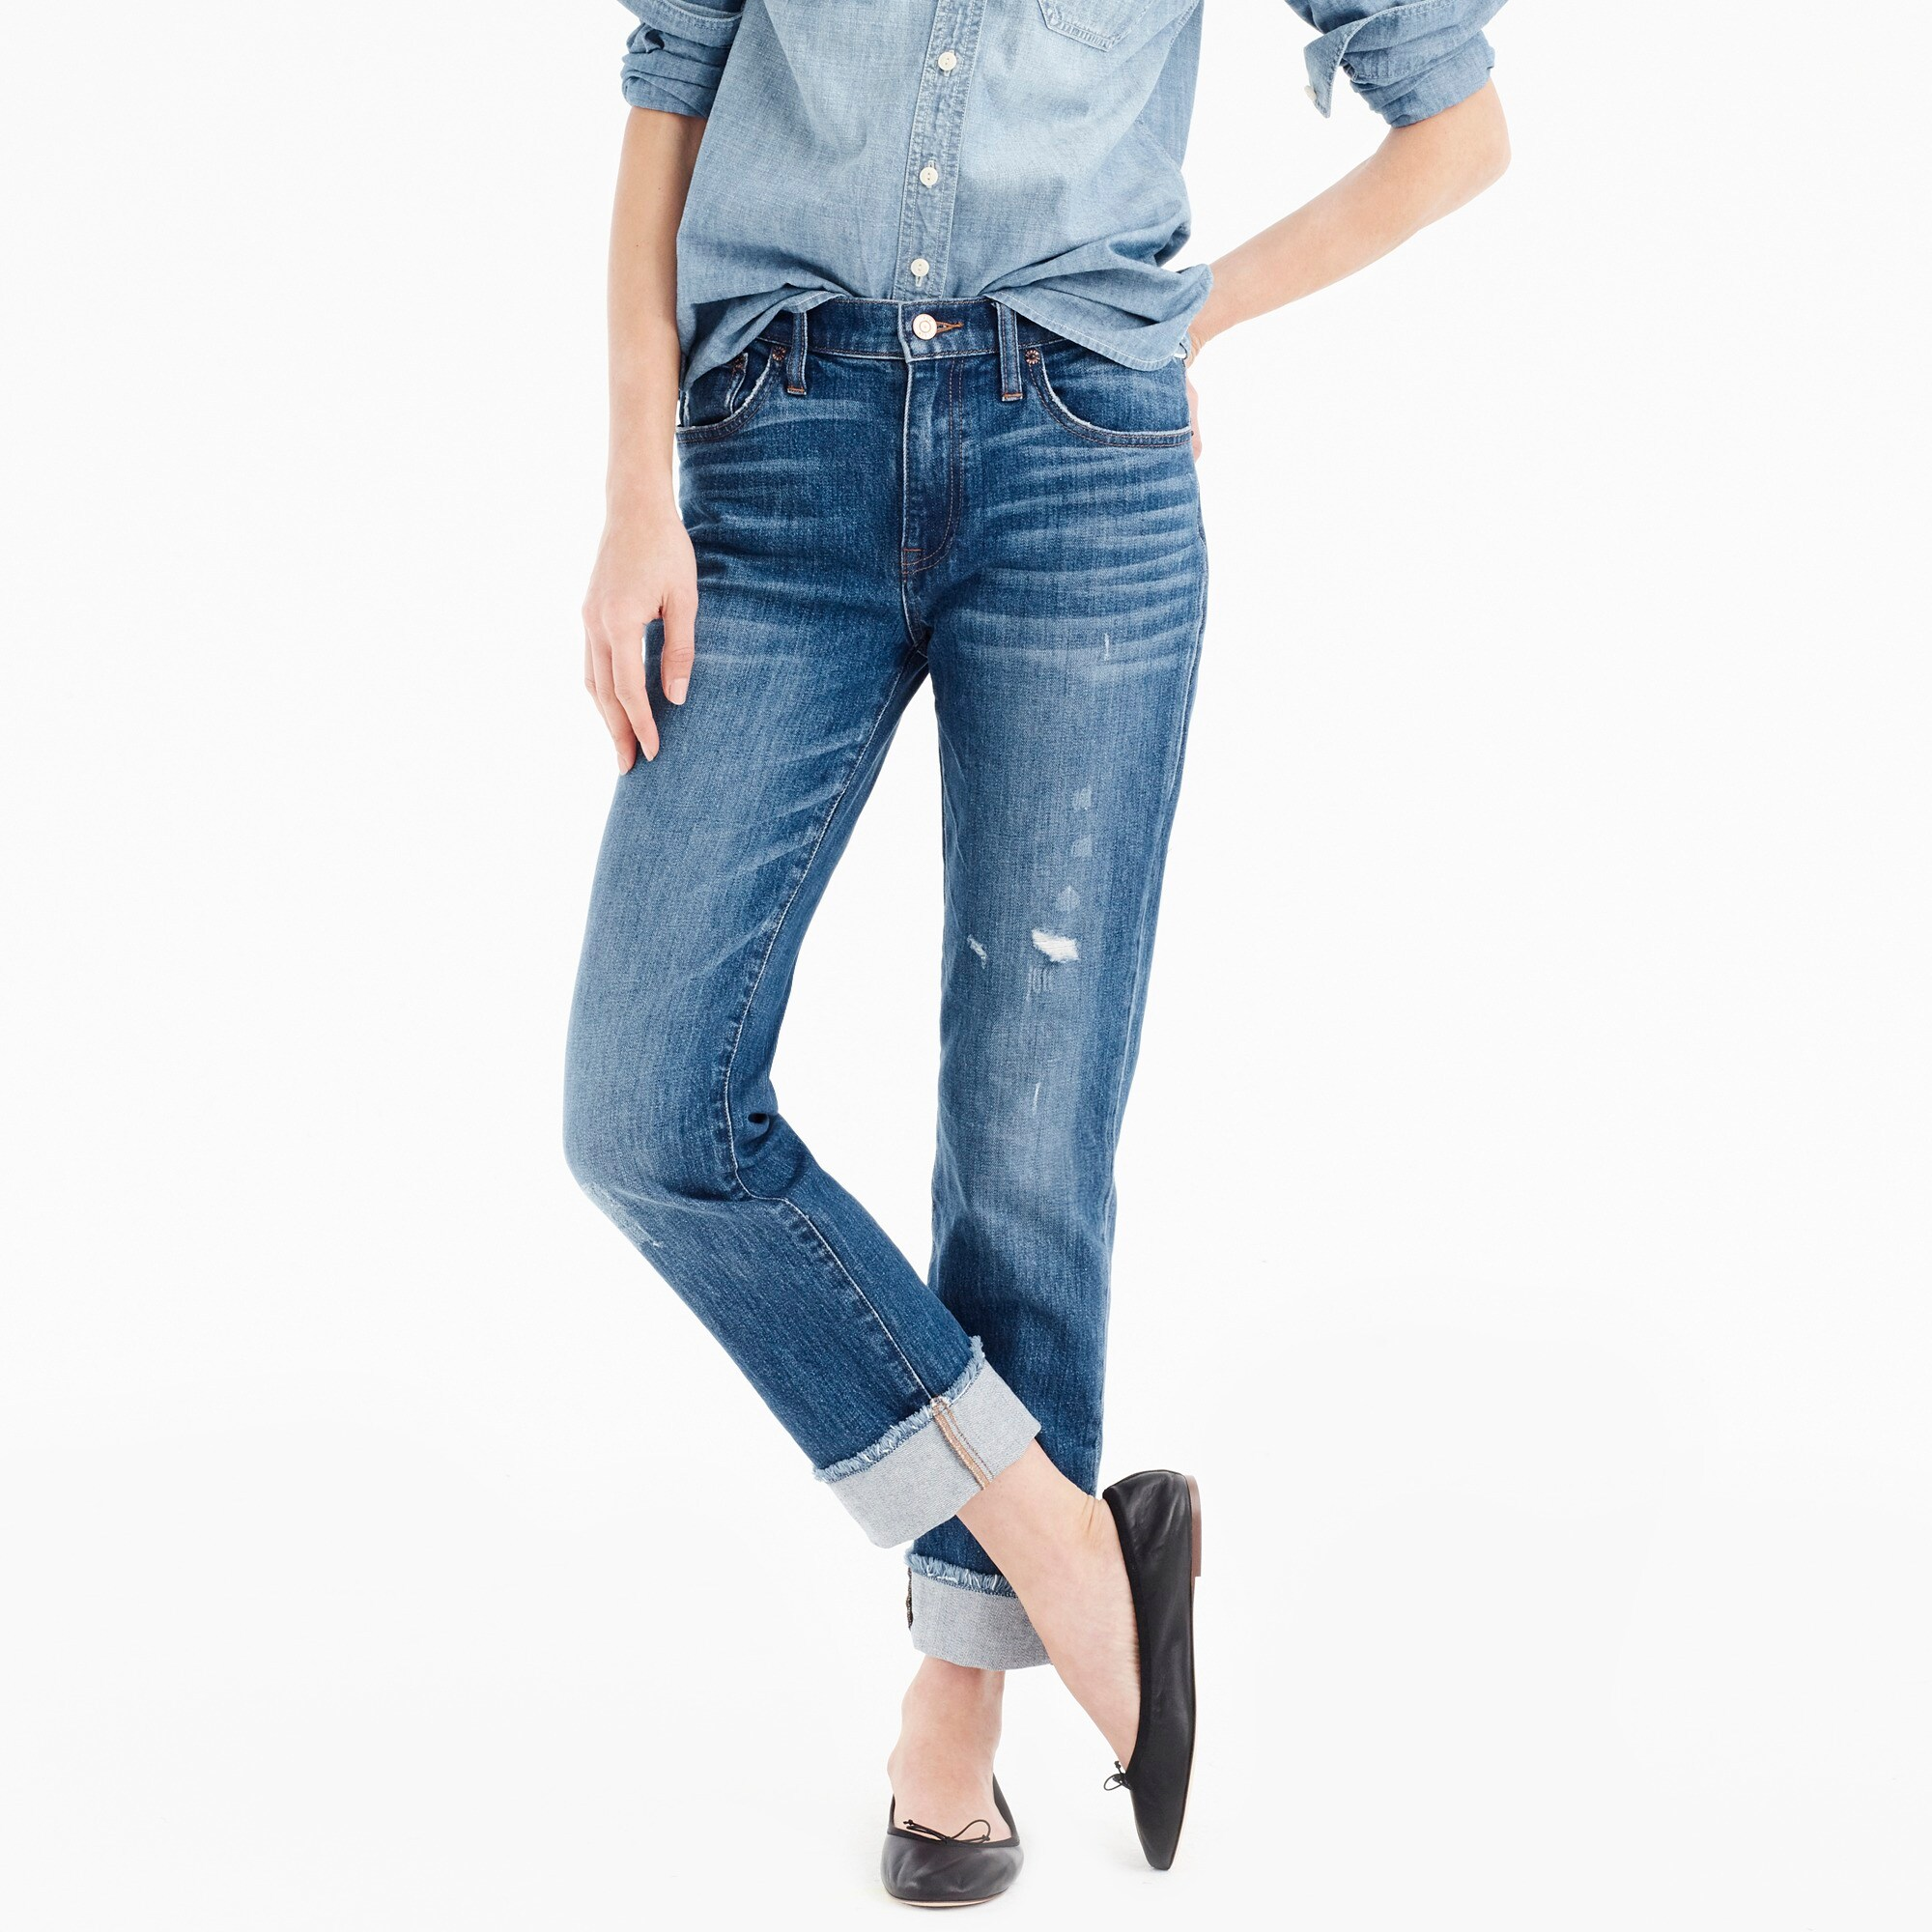 Image 1 for Petite slim boyfriend jean with cut hem